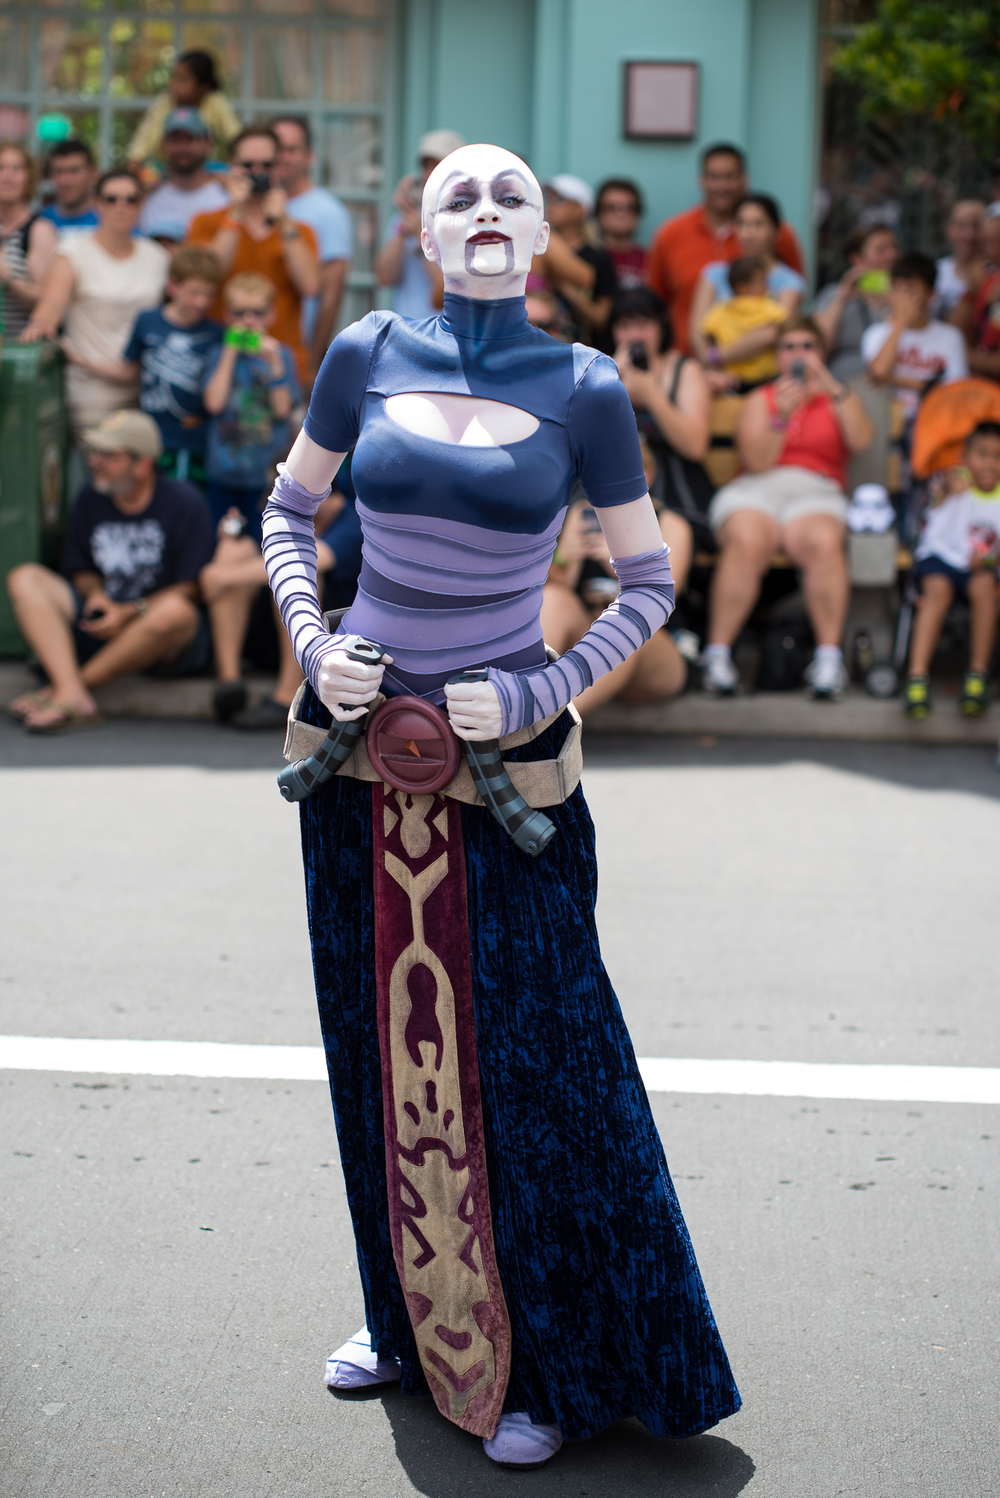 Asajj Ventress poses